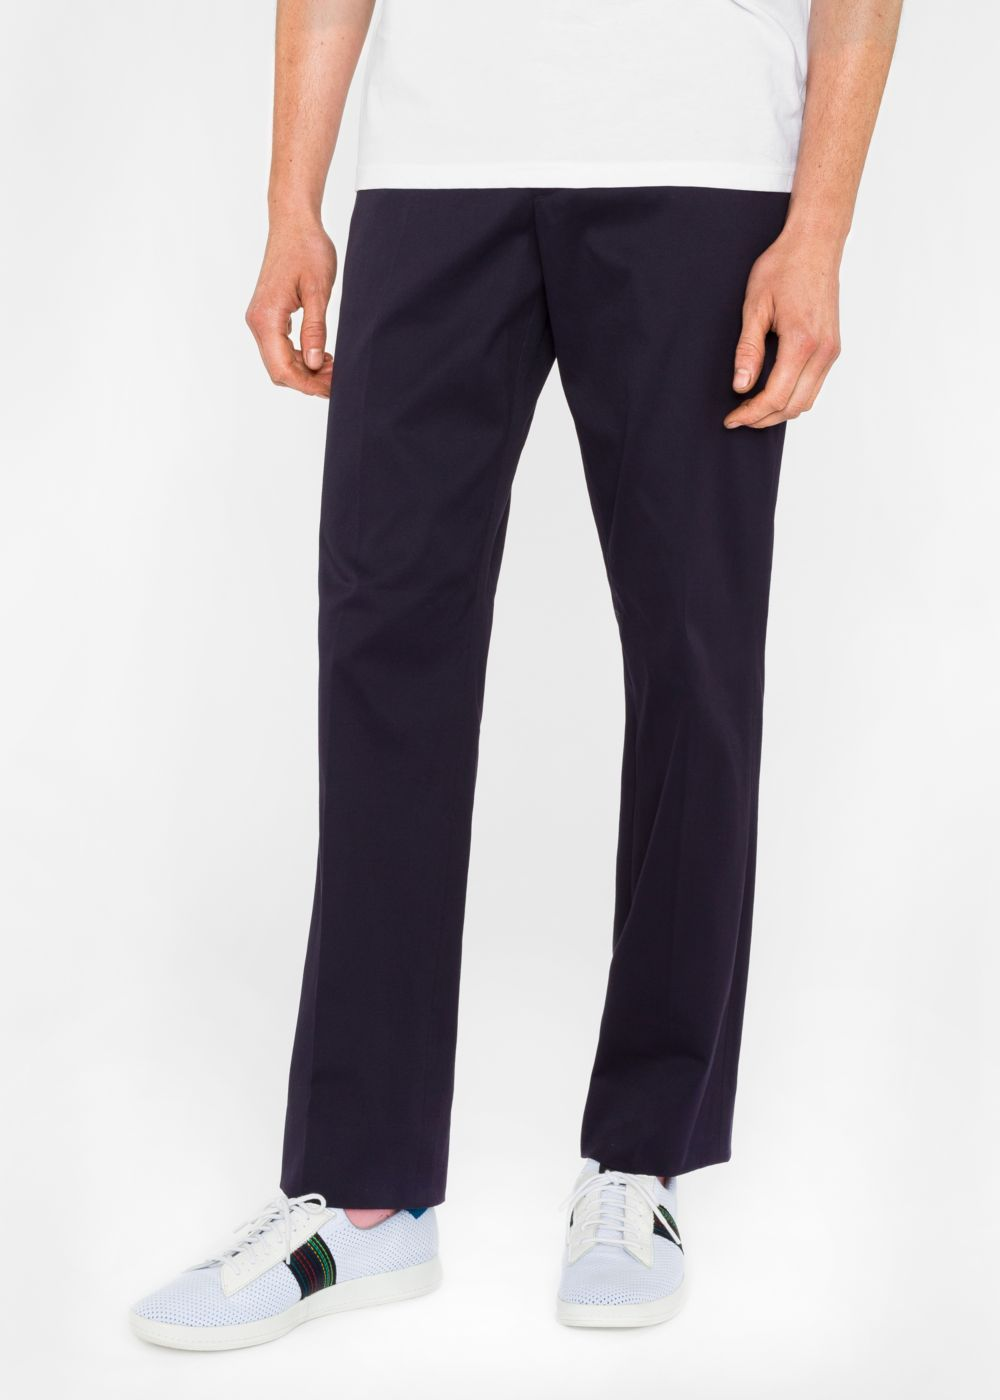 Paul Smith Men's Standard-Fit Navy Cotton-Twill Stretch Chinos